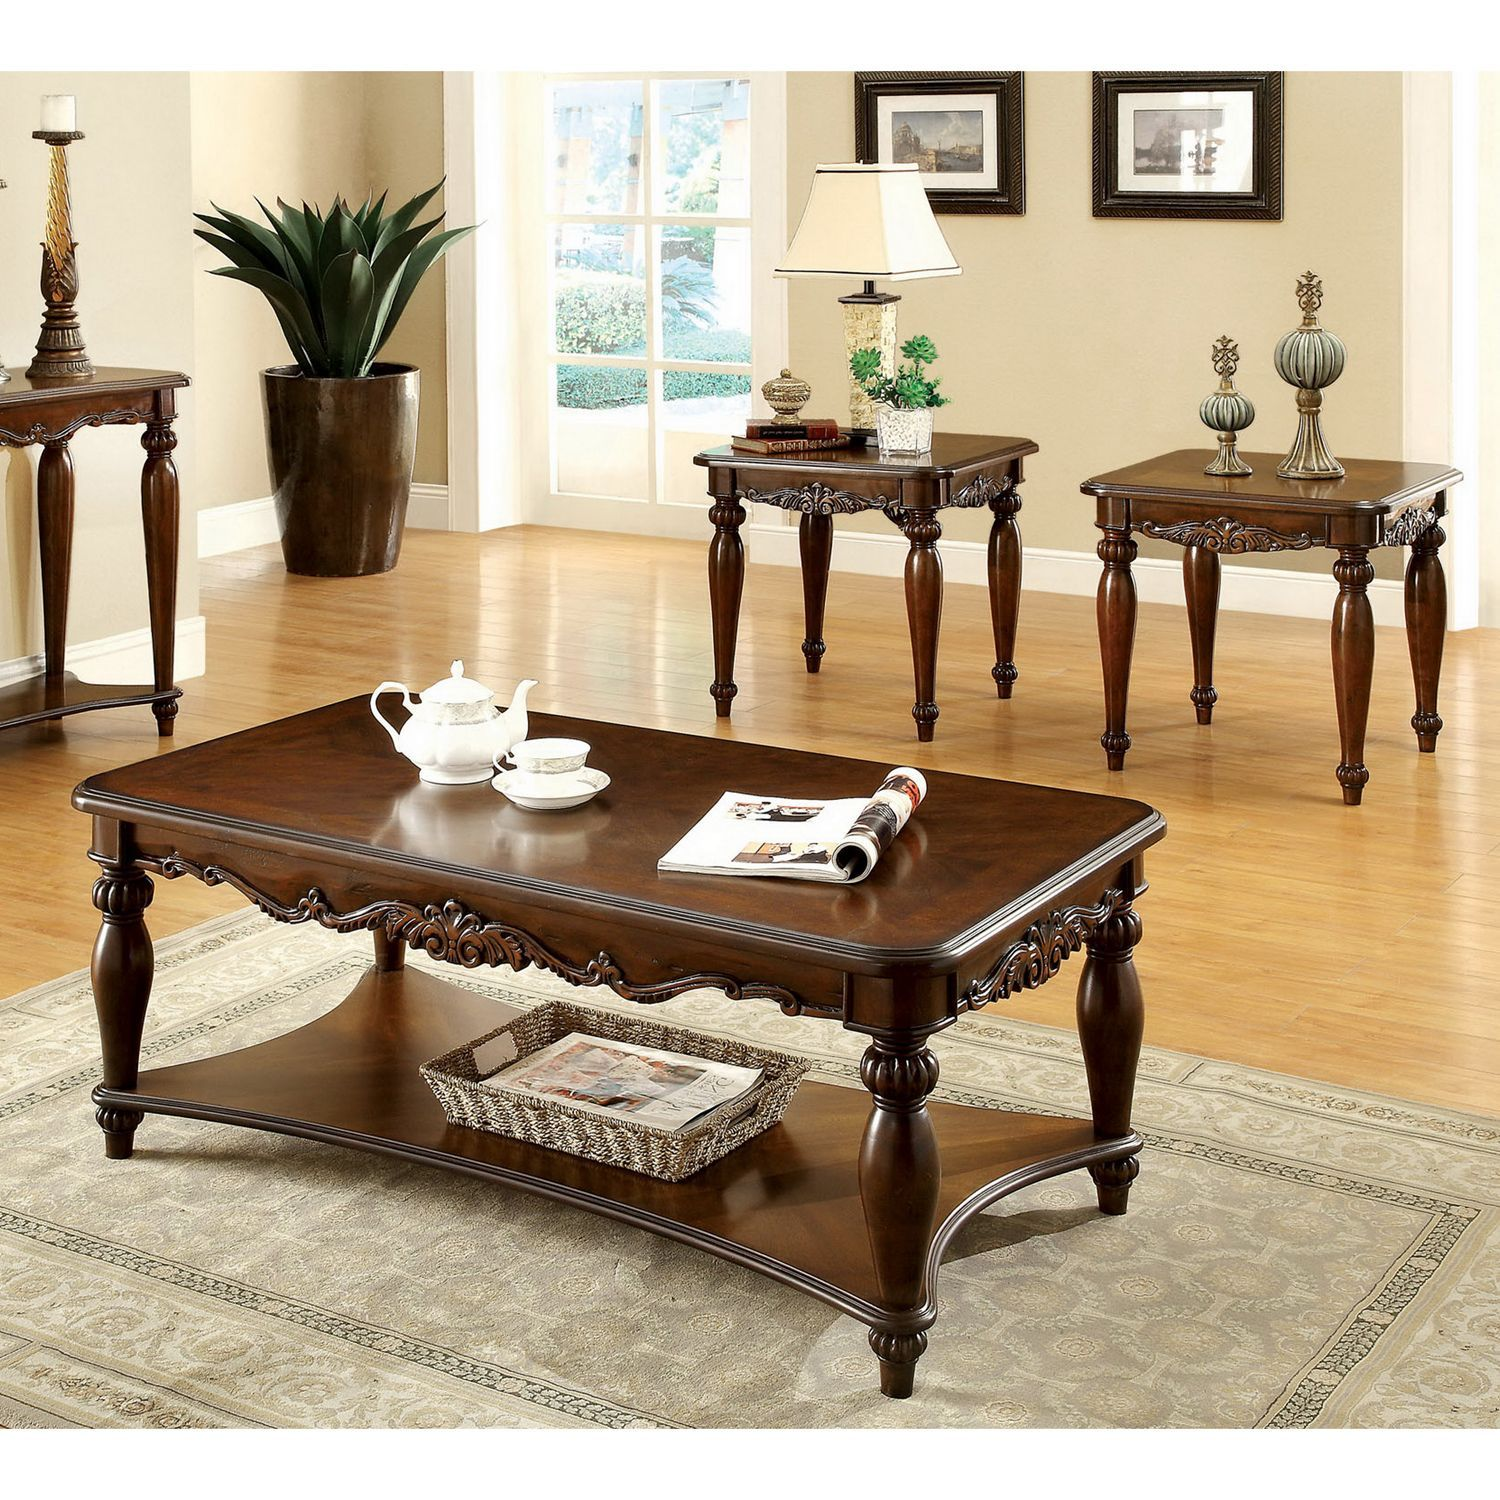 Overstock Com Online Shopping Bedding Furniture Electronics Jewelry Clothing More In 2020 Coffee Table 3 Piece Coffee Table Set Coffee And End Tables [ 1500 x 1500 Pixel ]